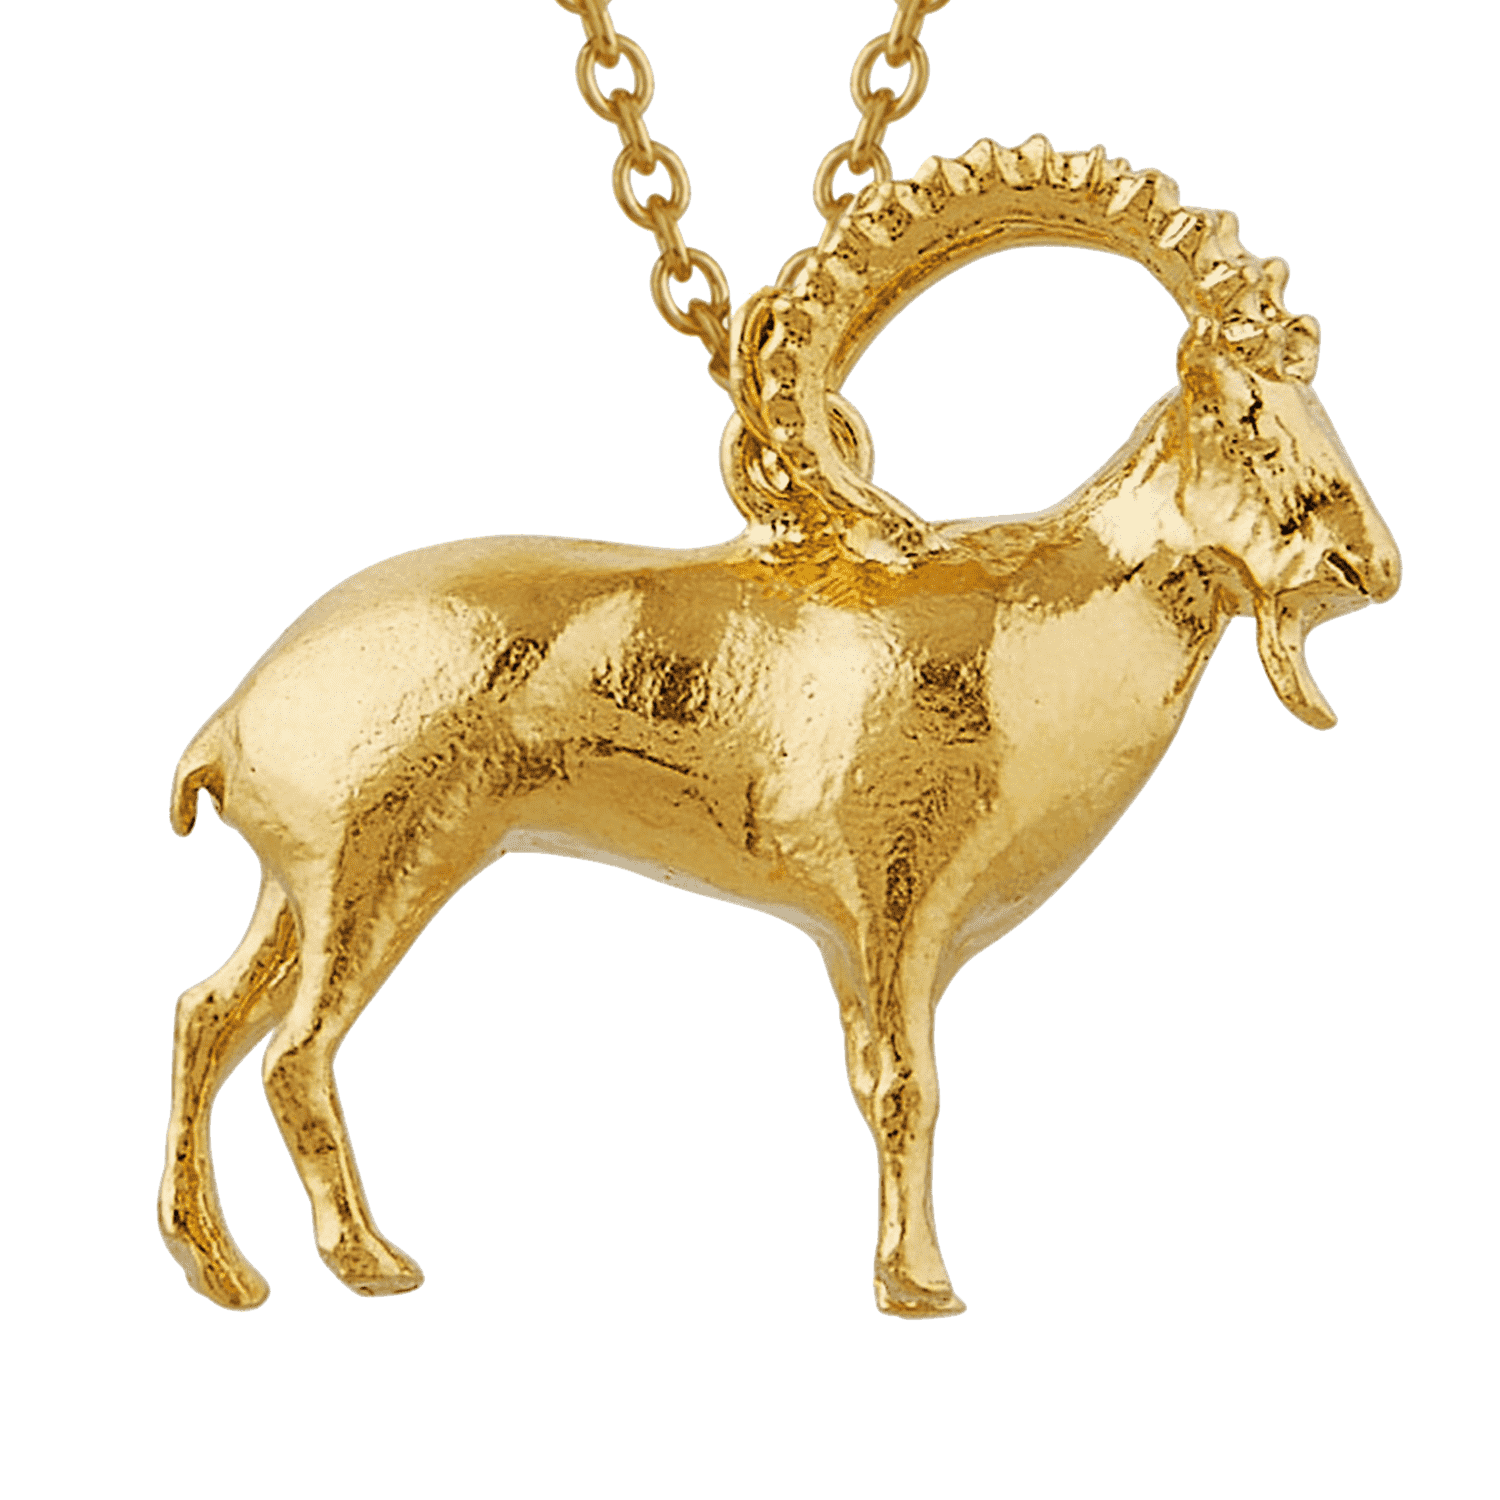 Gold Plated Ram Necklace